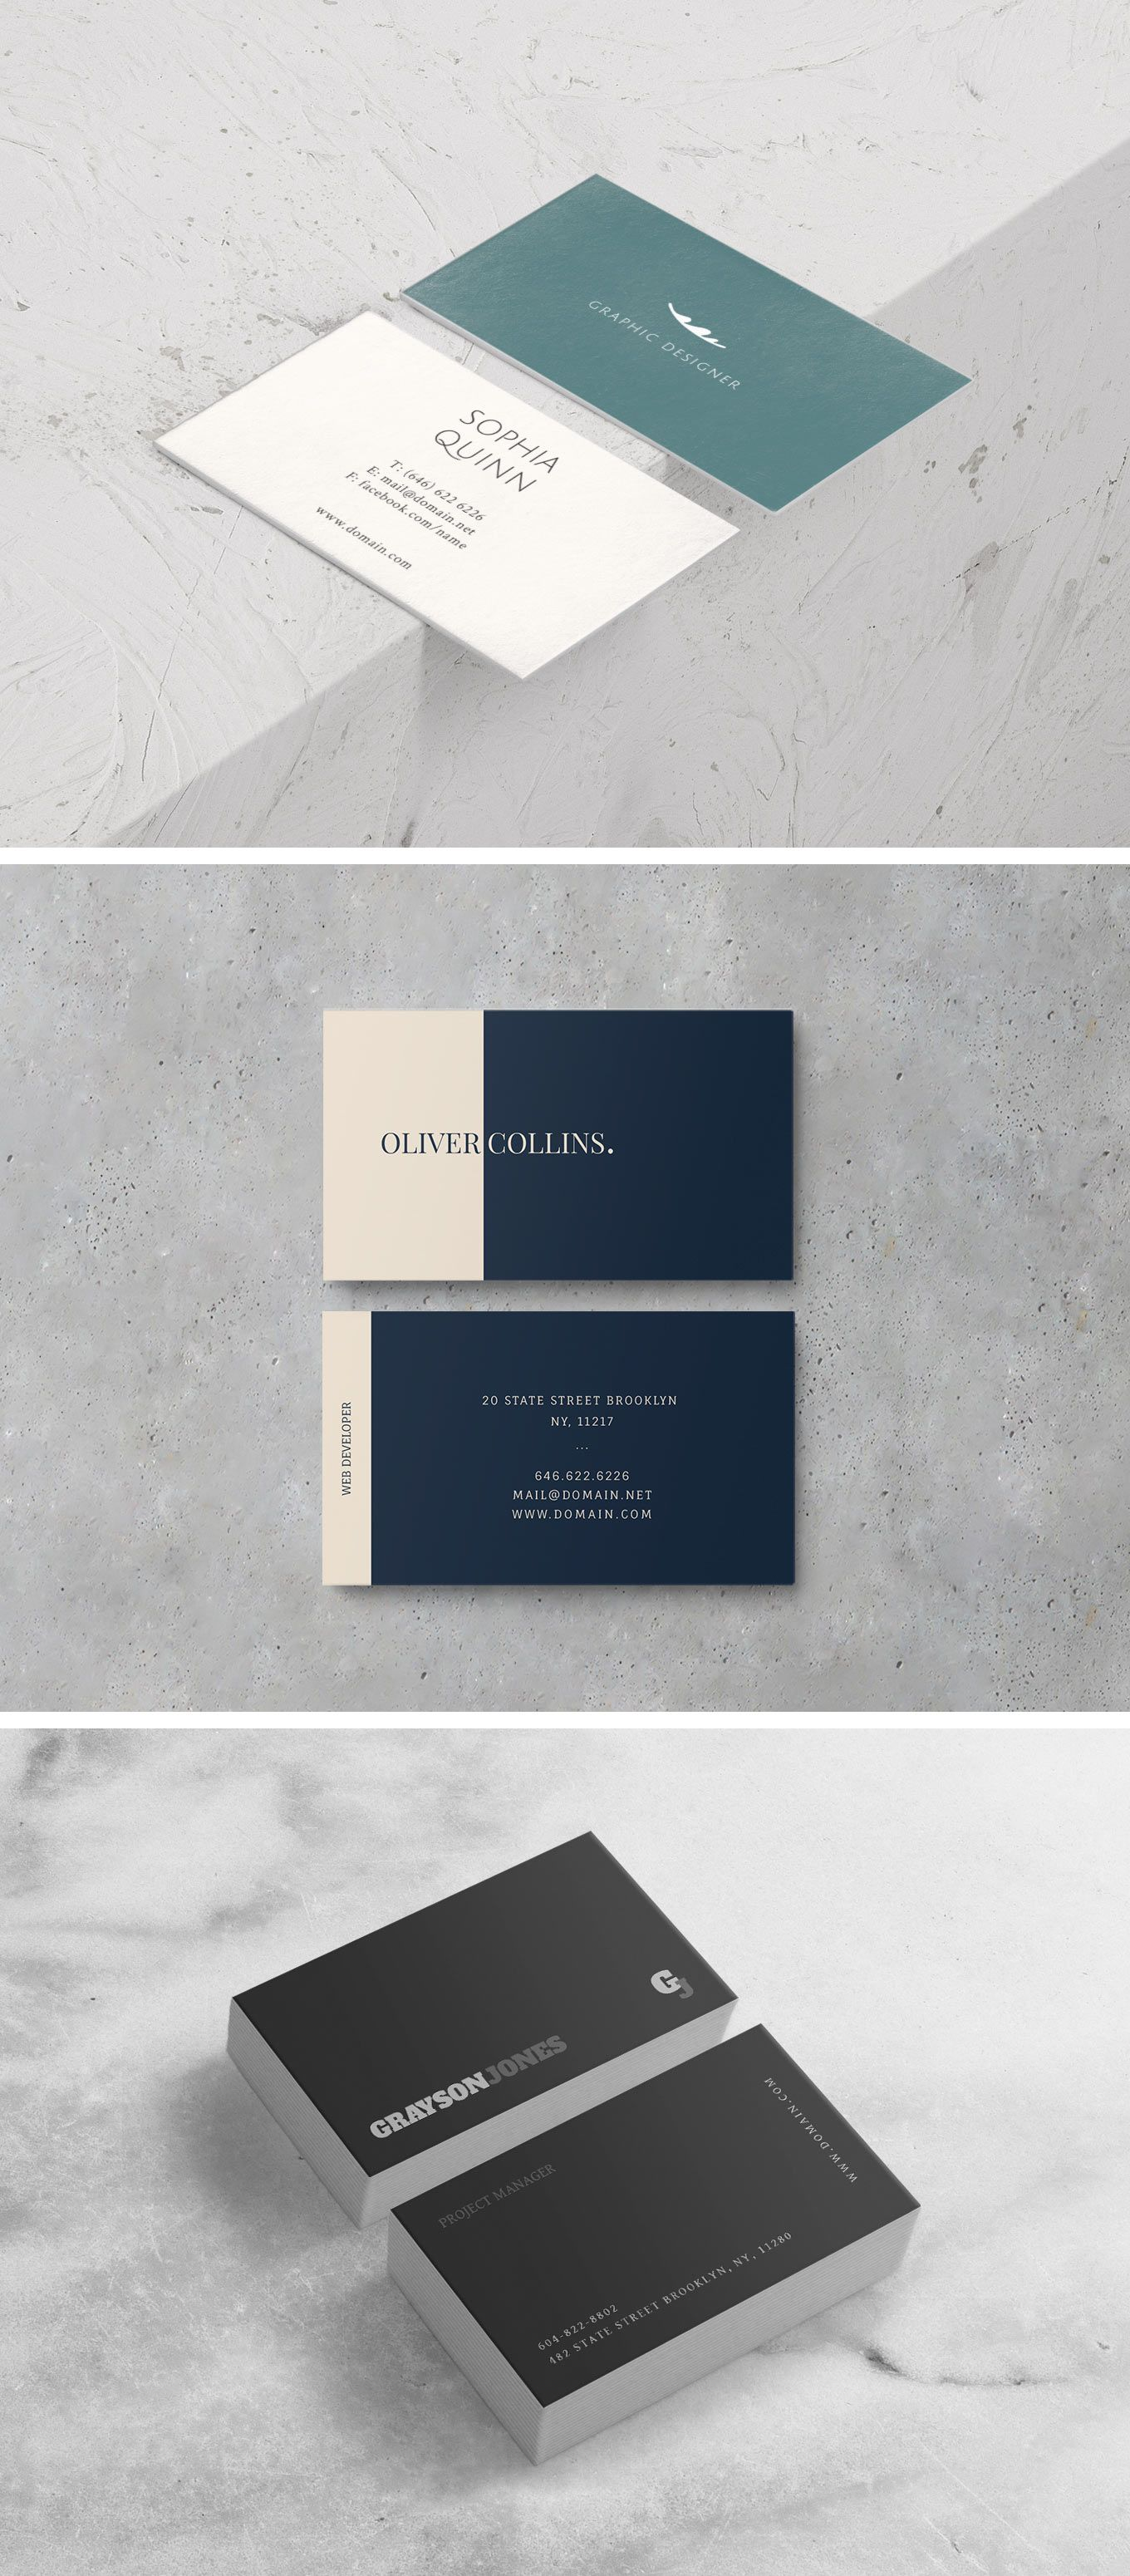 Hugo free business card templates in psd graphic design hugo business card templates download freebie by pixelbuddha freebies business businesscards flashek Images